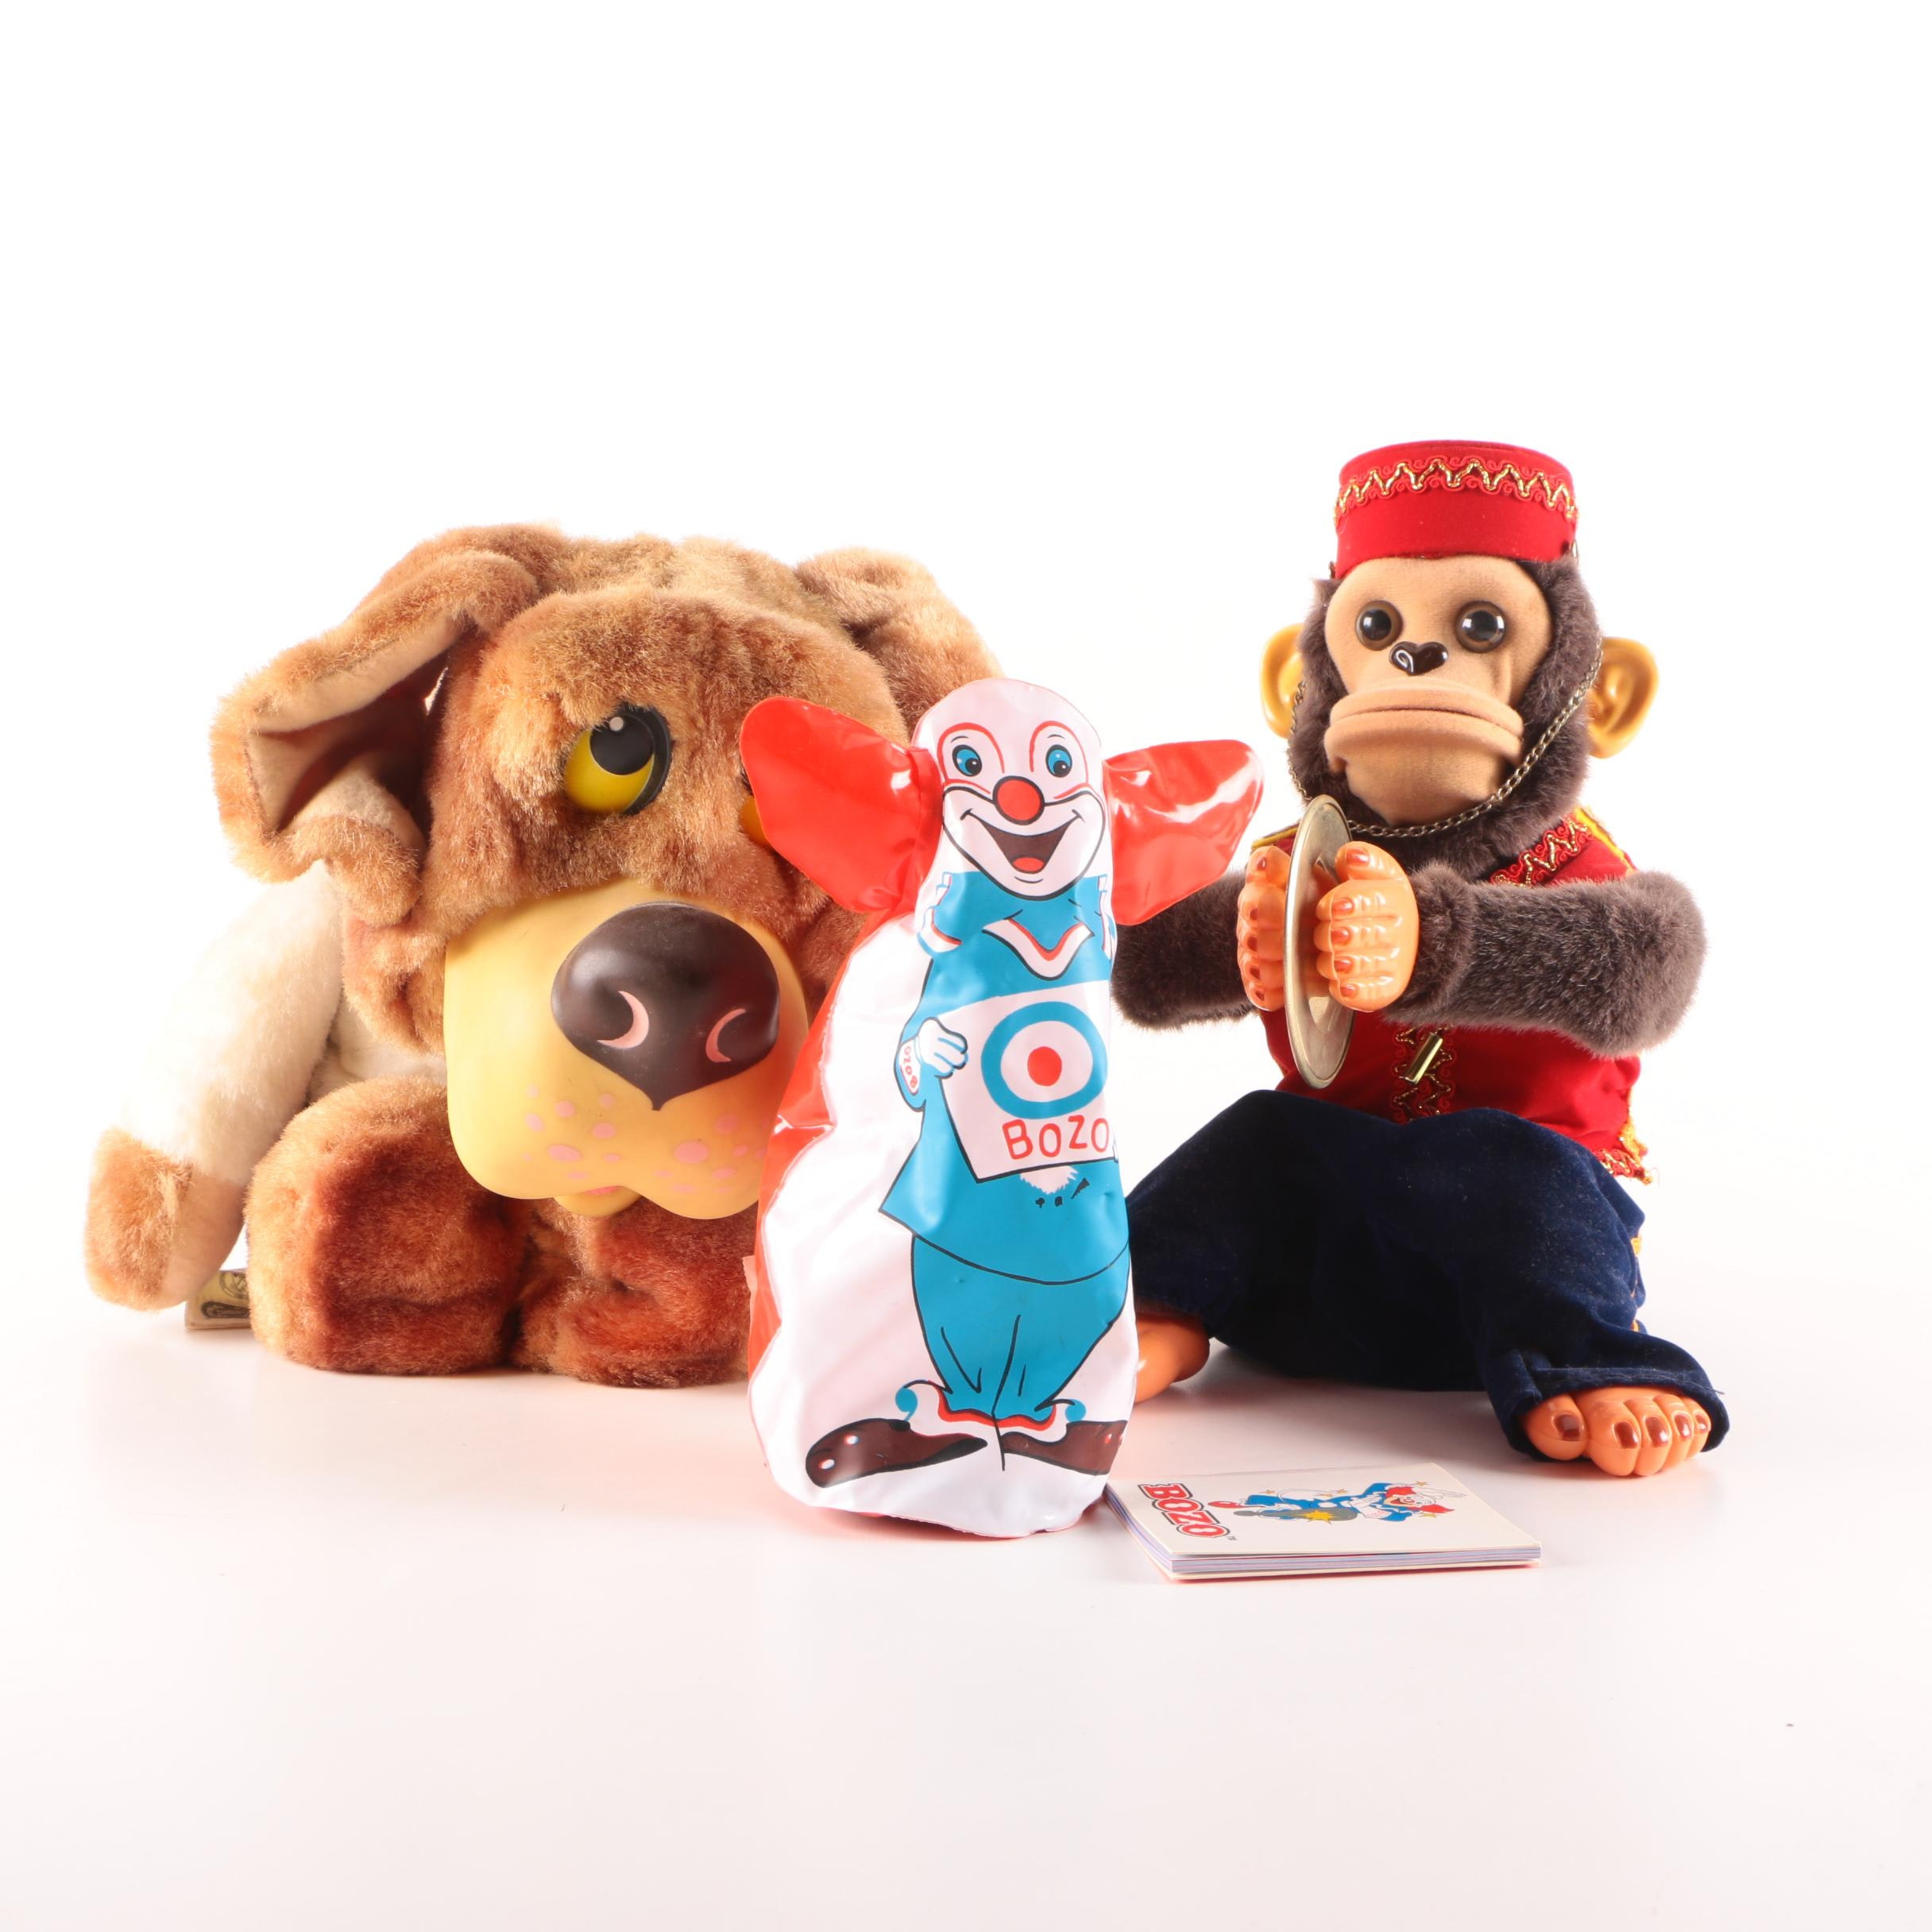 Mister Monkey, Bozo Inflatable Punching Bag, and Talking Bernie Bernard